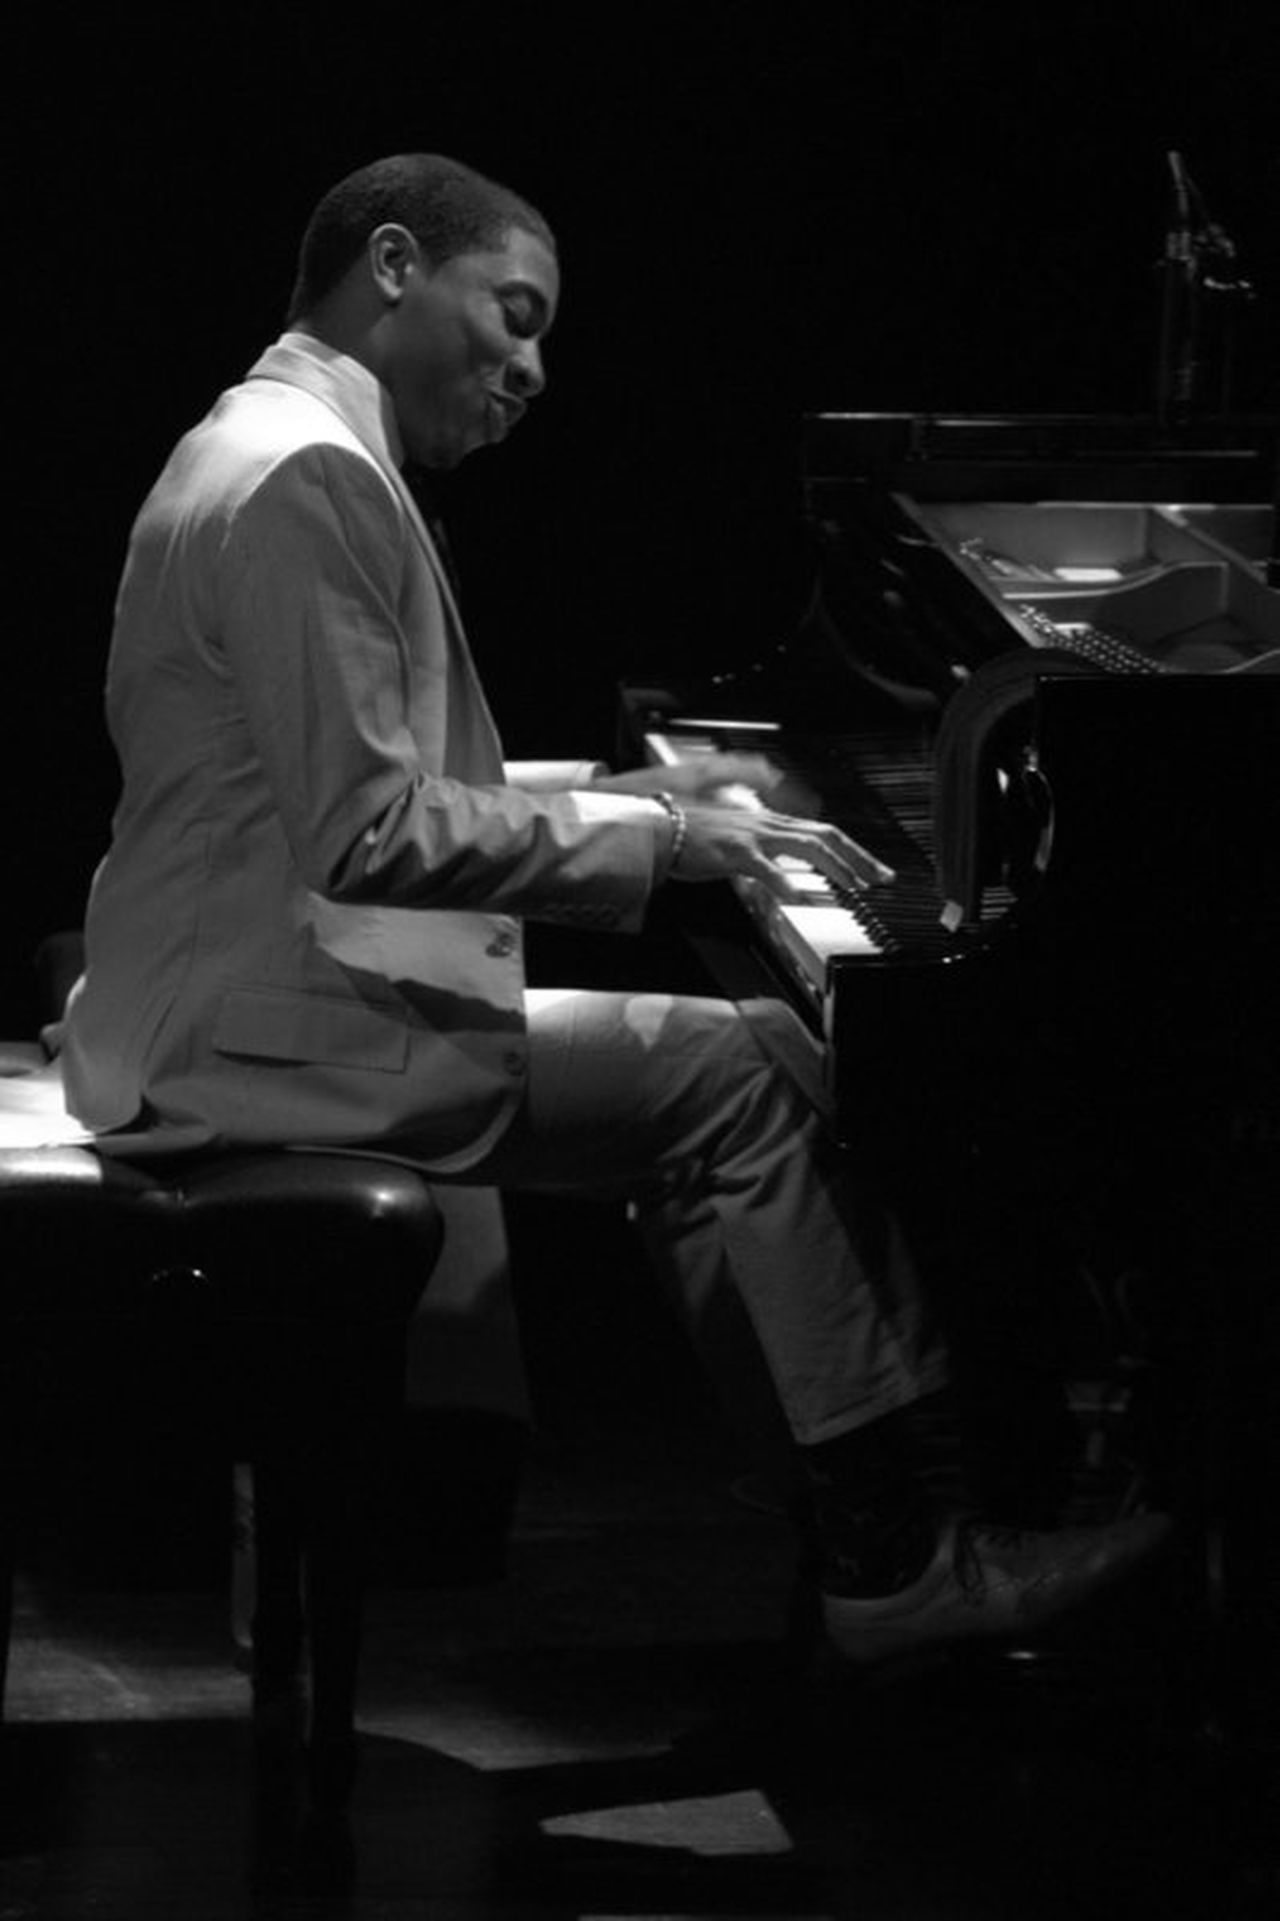 Monochrome Photography Piano Moments Jazz Music Pianist Black And White Photography Christian Sands Jazz